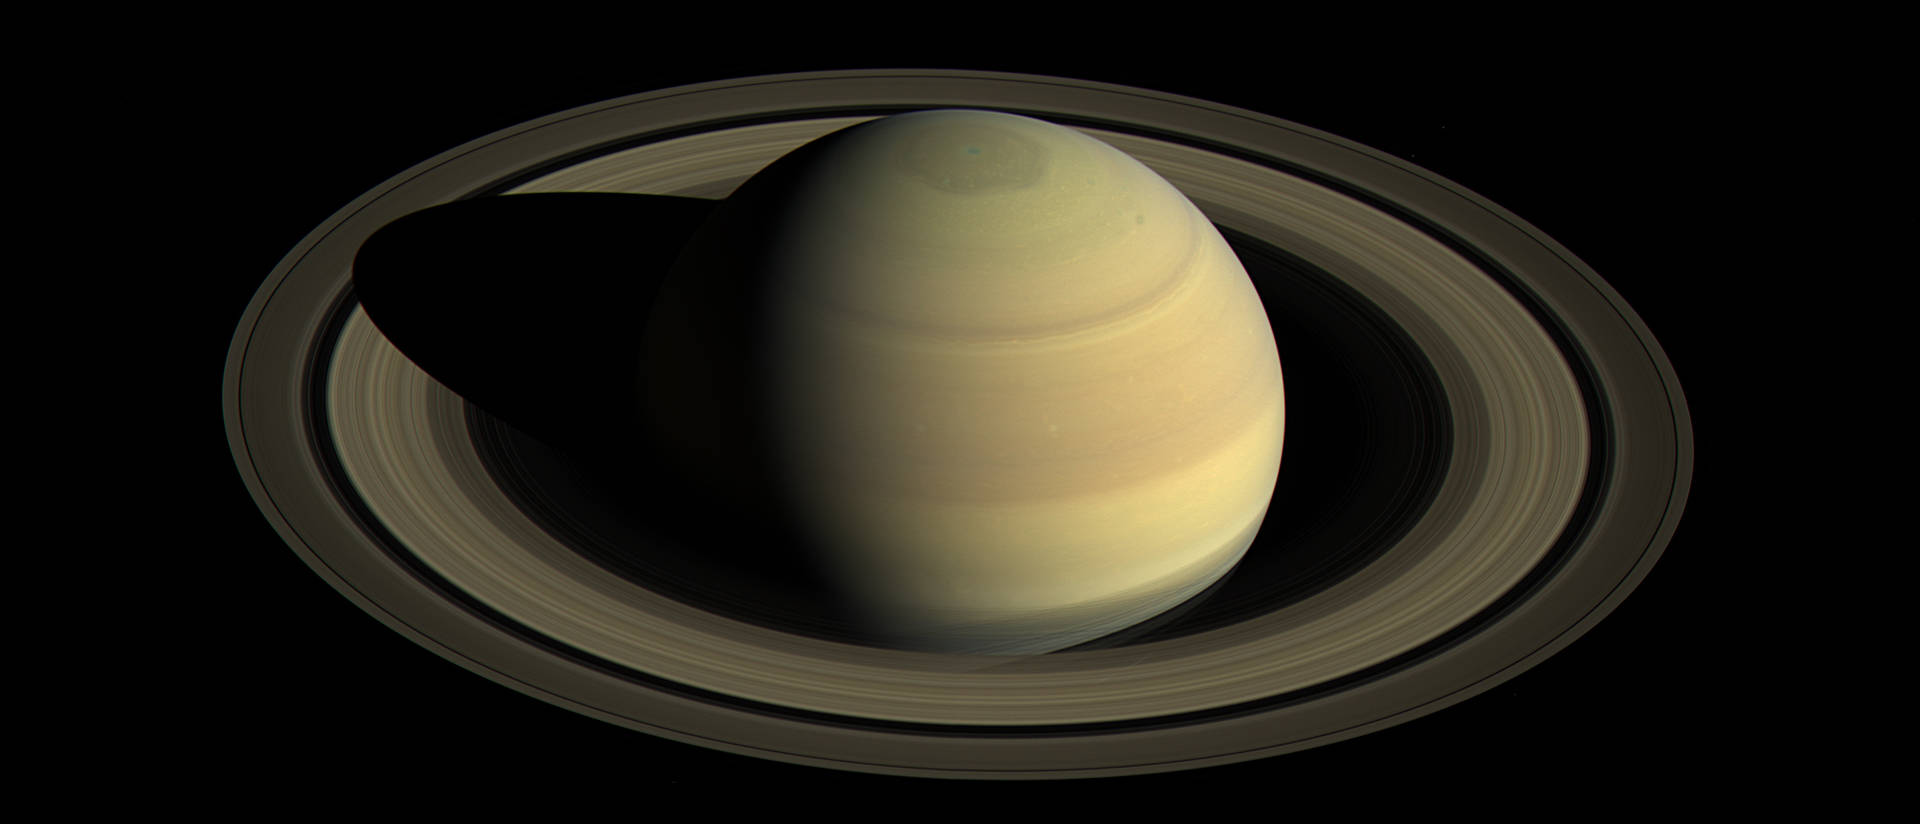 This image of Saturn's northern hemisphere was taken by Saturn's wide-angle camera at a distance of 1.9 million miles. (Photo credit: NASA)